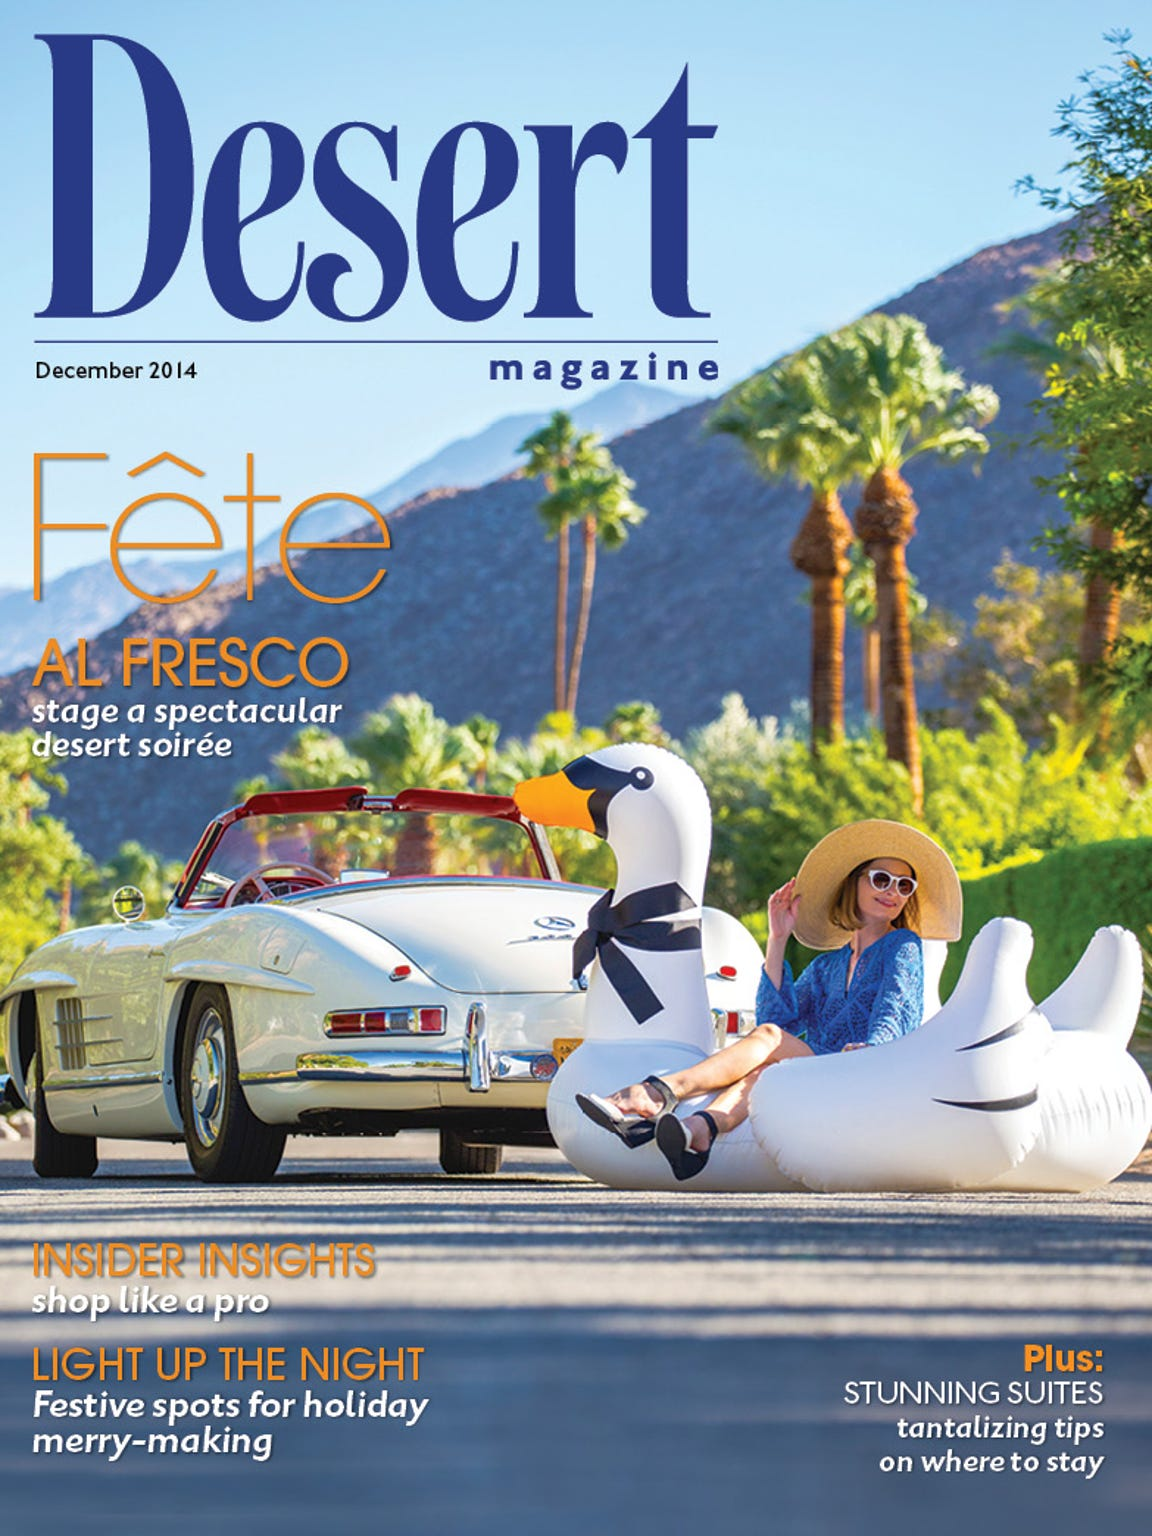 This story was published in the December 2014 issue of Desert Magazine.